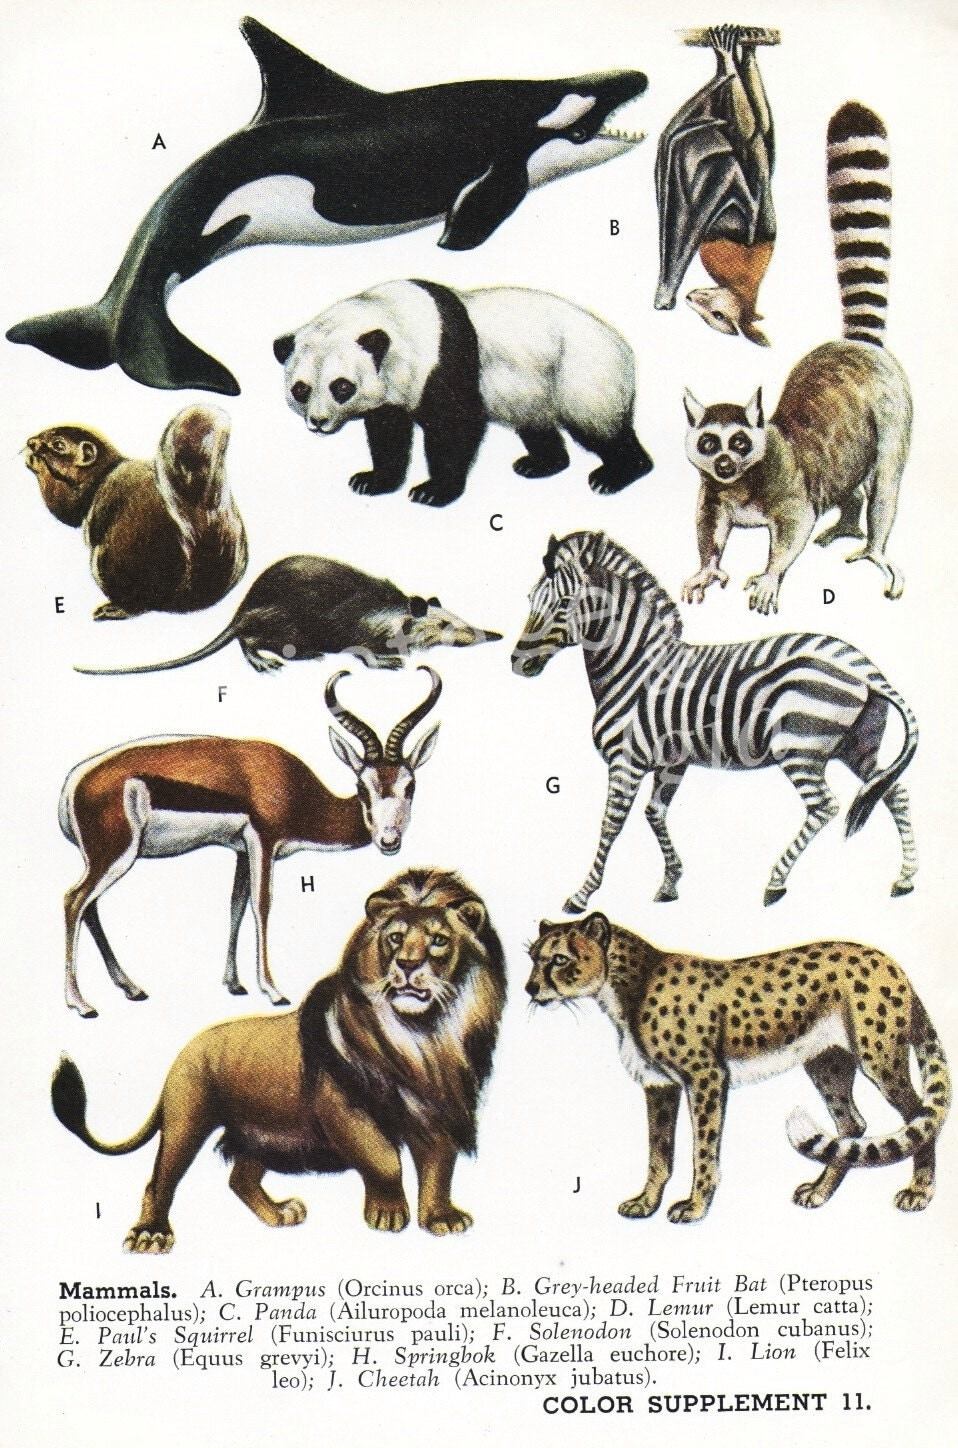 Vintage print orca whale giant panda zebra lion cheetah animal decor